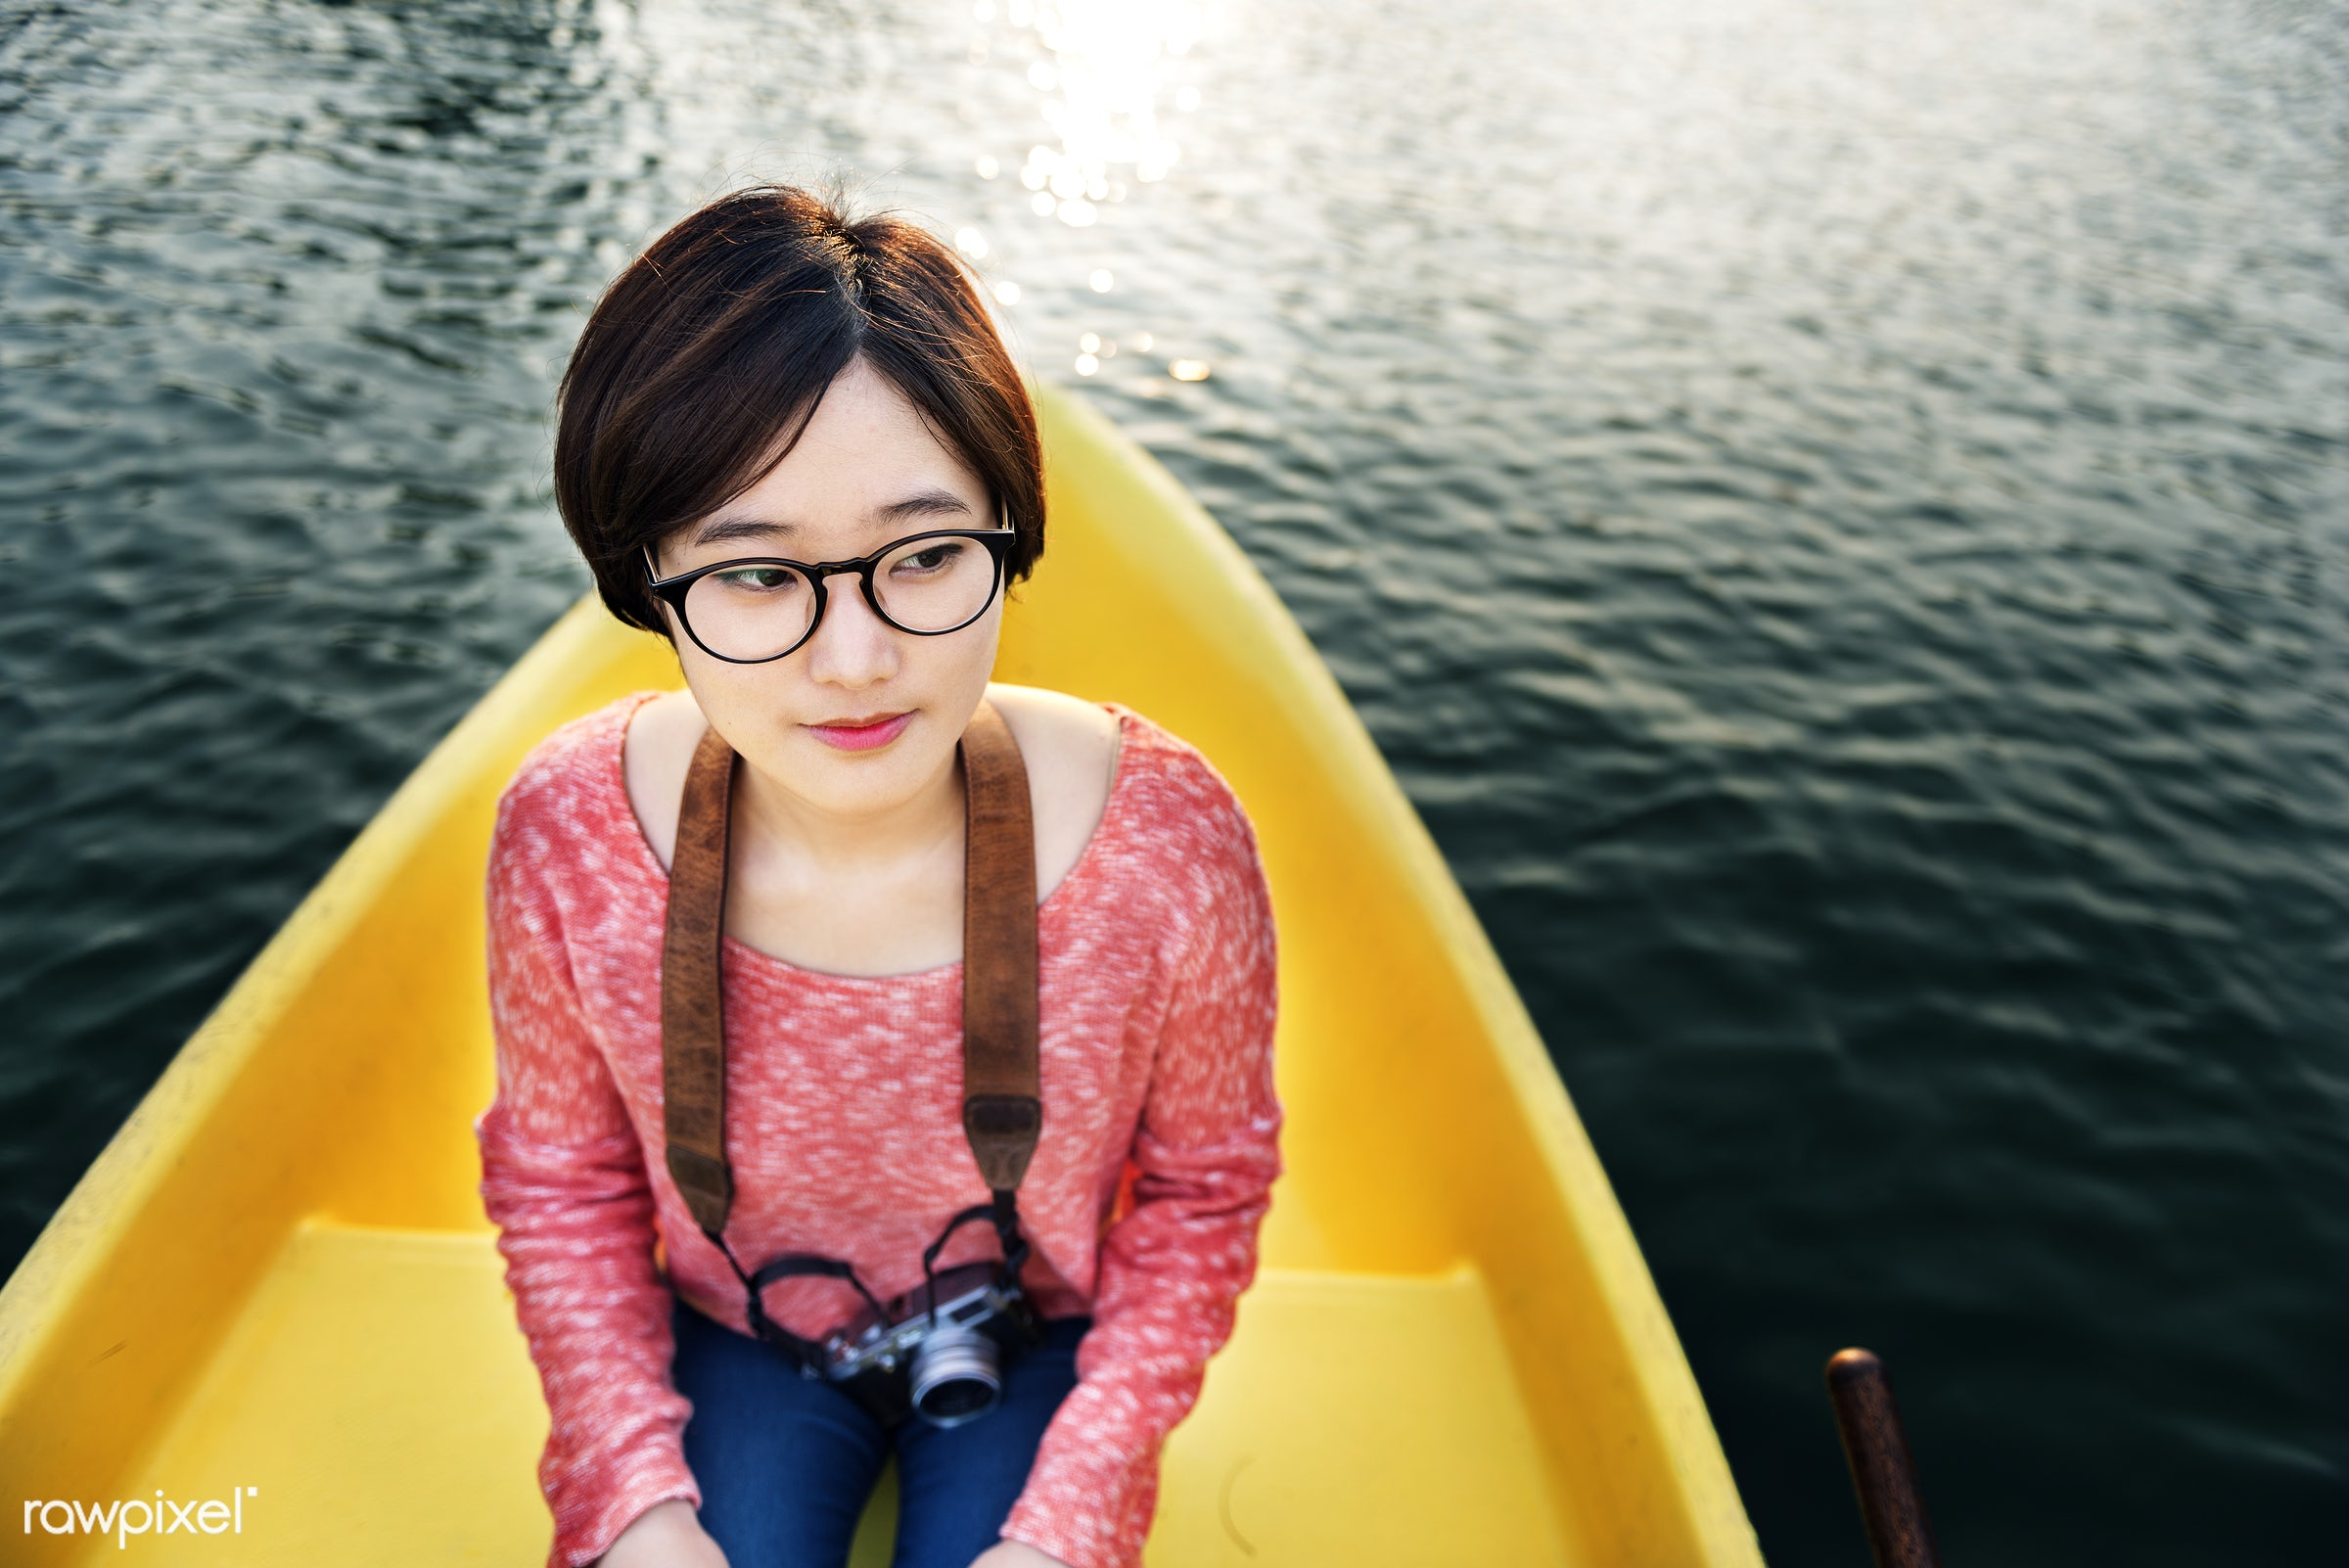 Girl's adventure on a boat ride - canoe, activity, adventure, asian ethnicity, beautiful, boat, camera, canoeing, casual,...